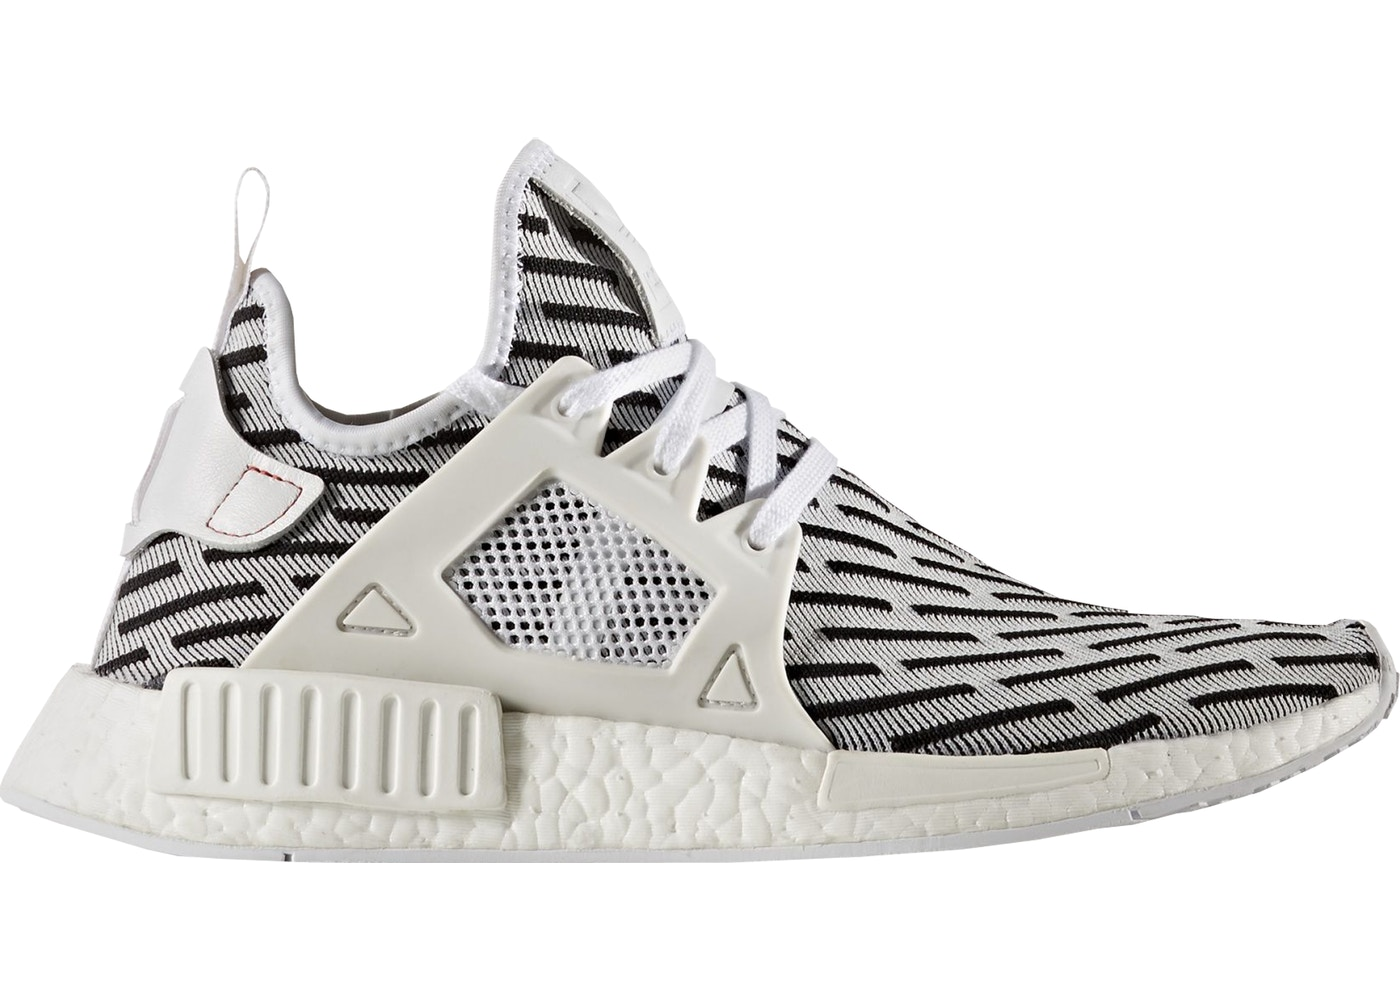 nmd xr2 black and white